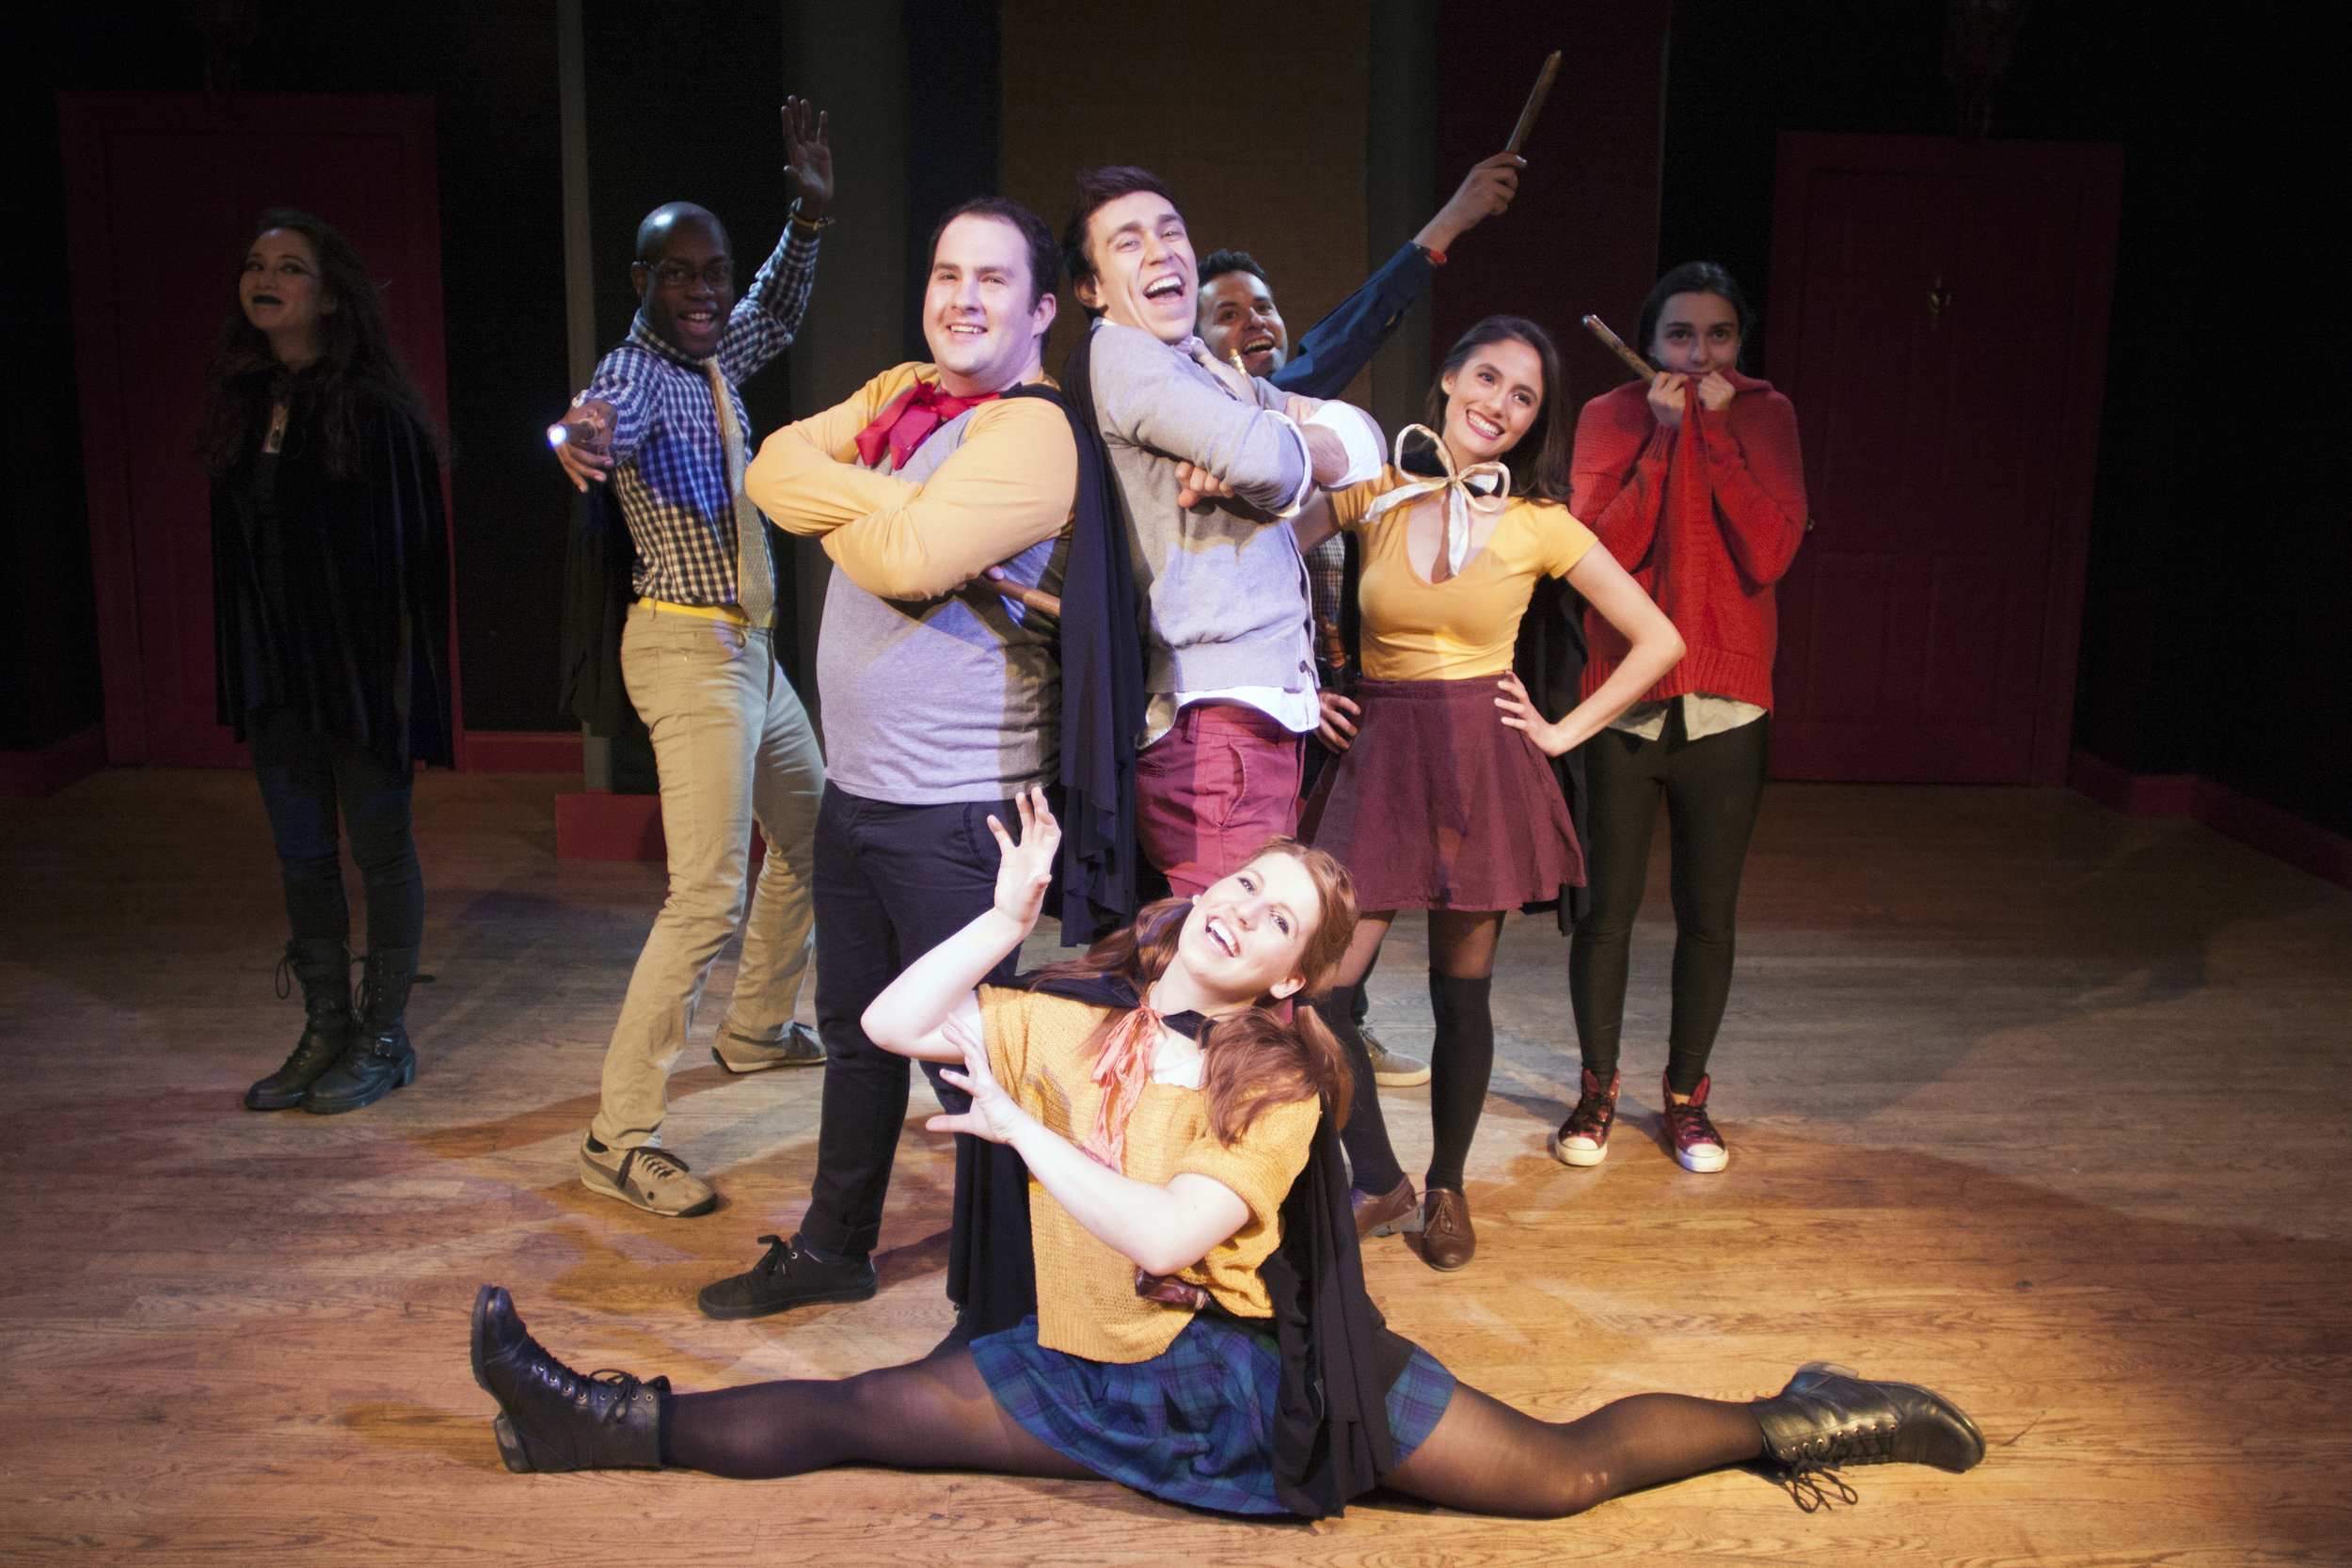 IMG_3295 - PUFFS - The Puff Dance - The Company-Photo by Lloyd Mulvey.jpg